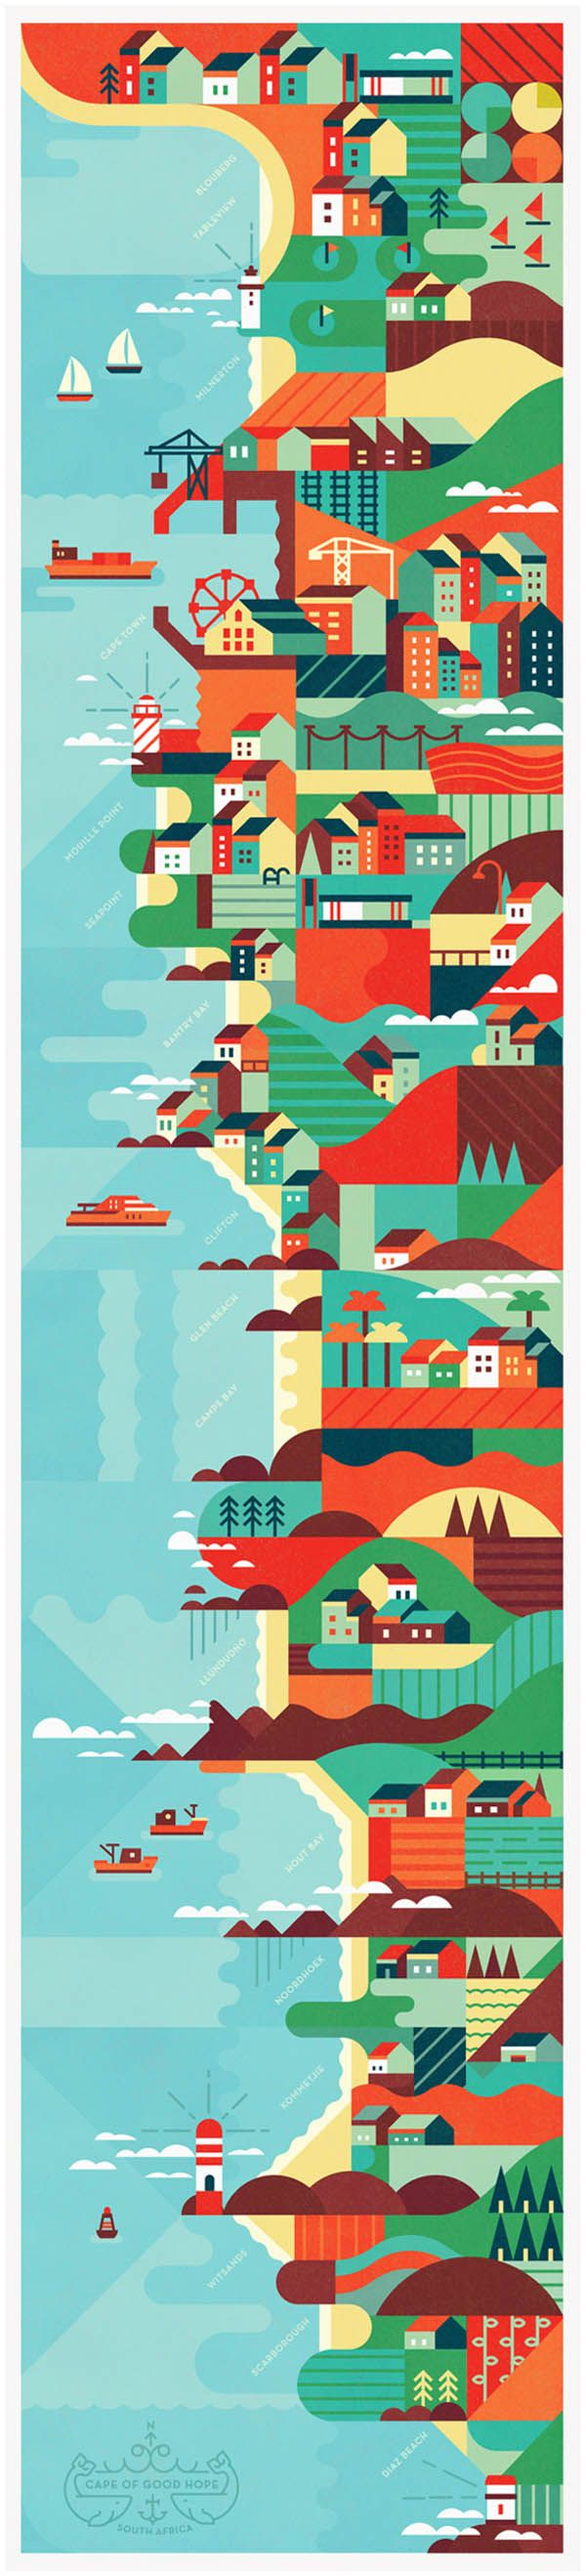 Cape of Good Hope - Illustration by MUTI - WE AND THE COLOR